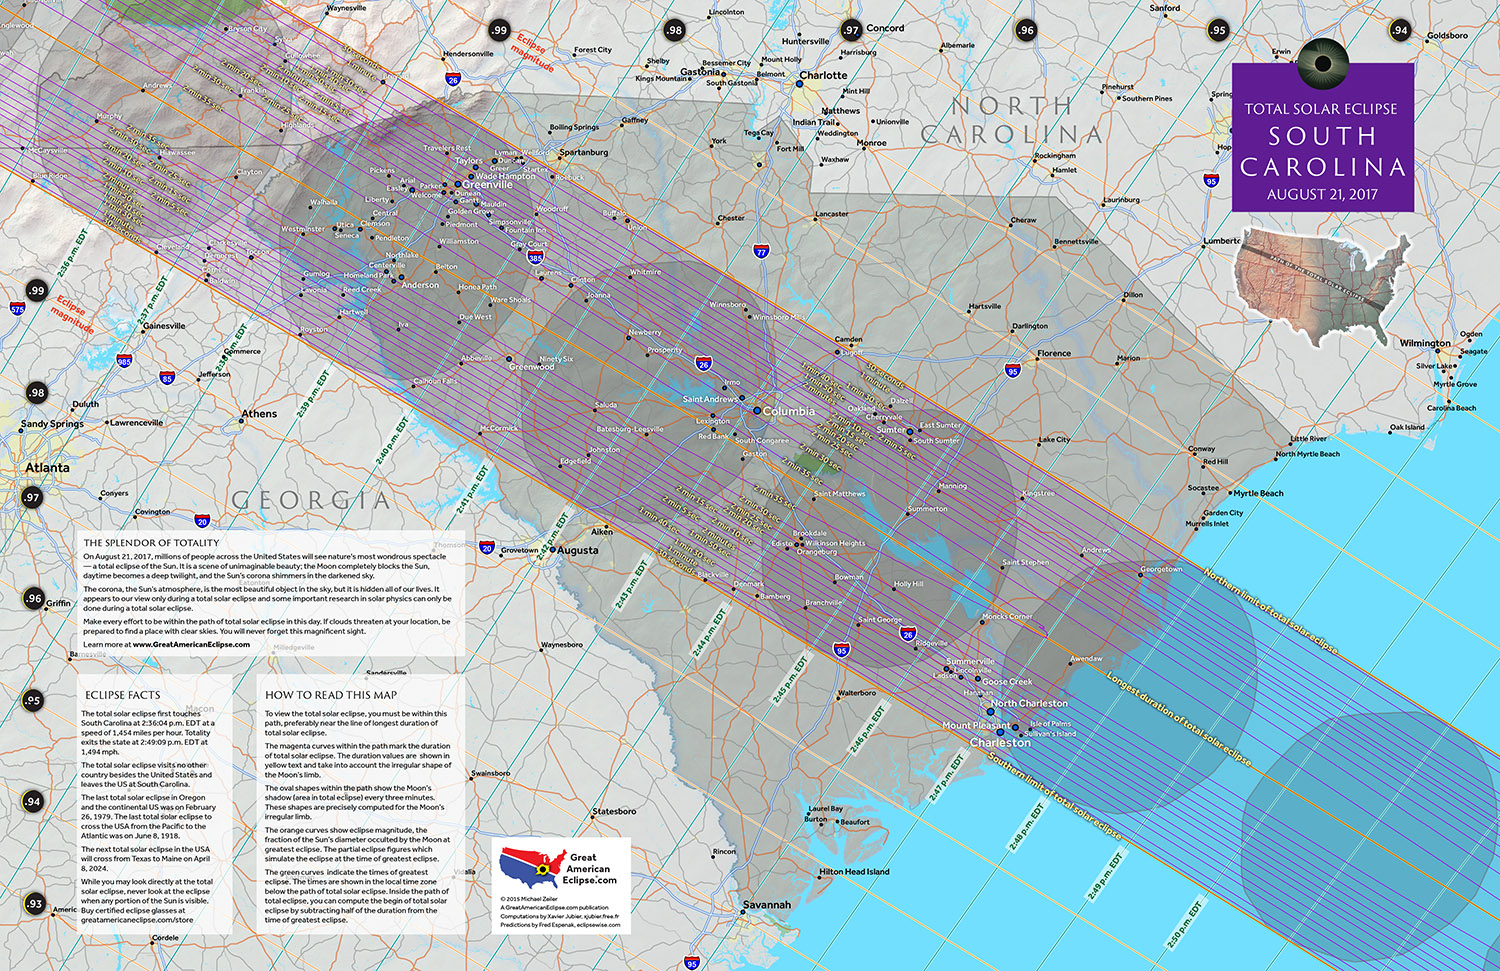 South Carolina 2017 State Map — Total solar eclipse of April 8, 2024